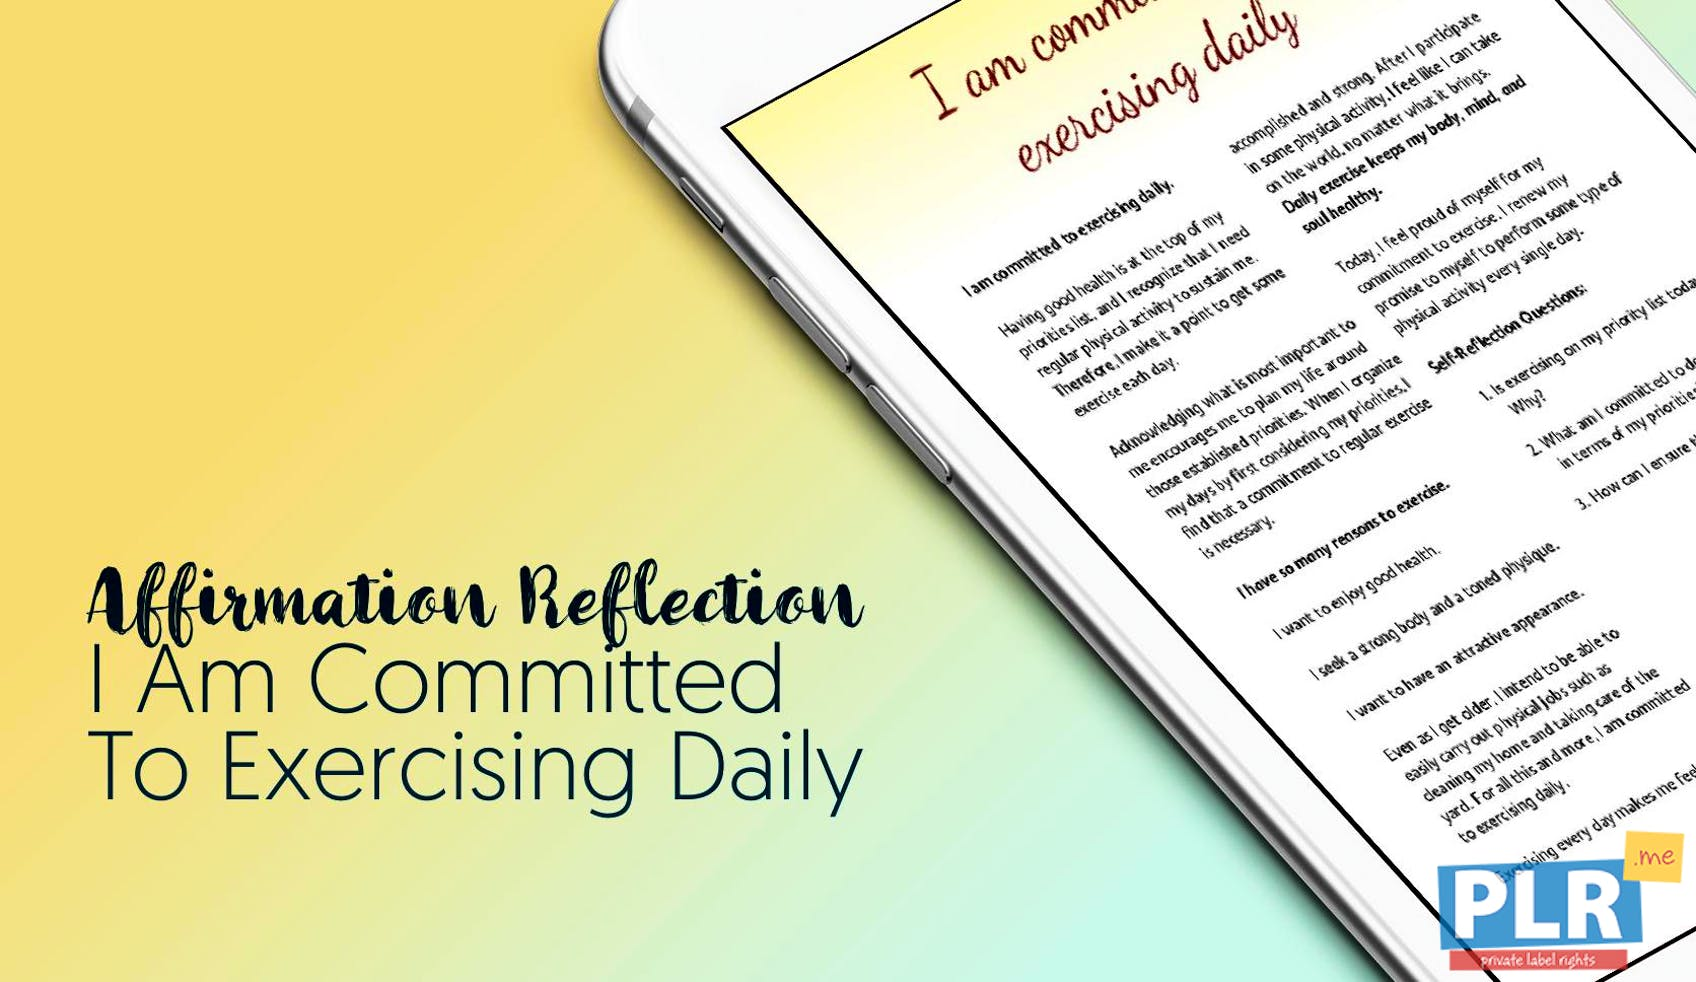 I Am Committed To Exercising Daily